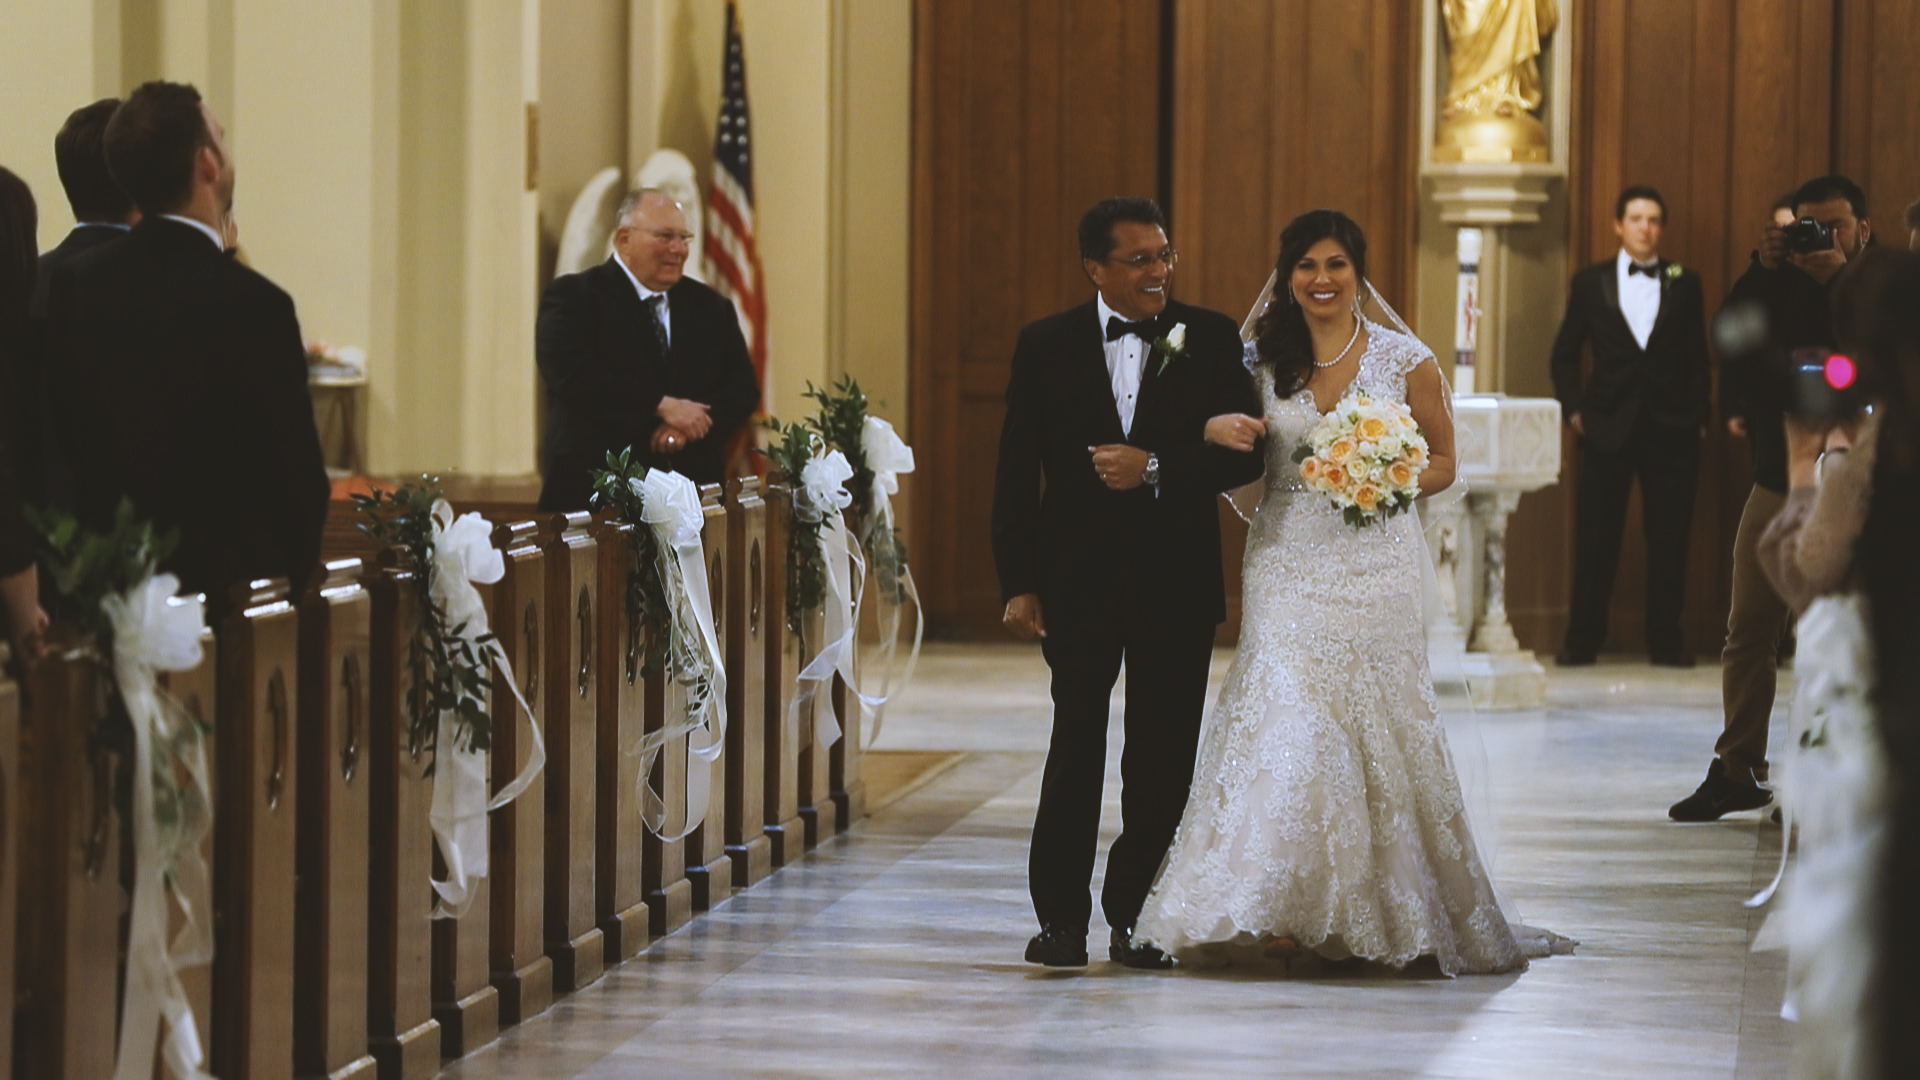 Gabby and Patrick_Father walking bride down aisle